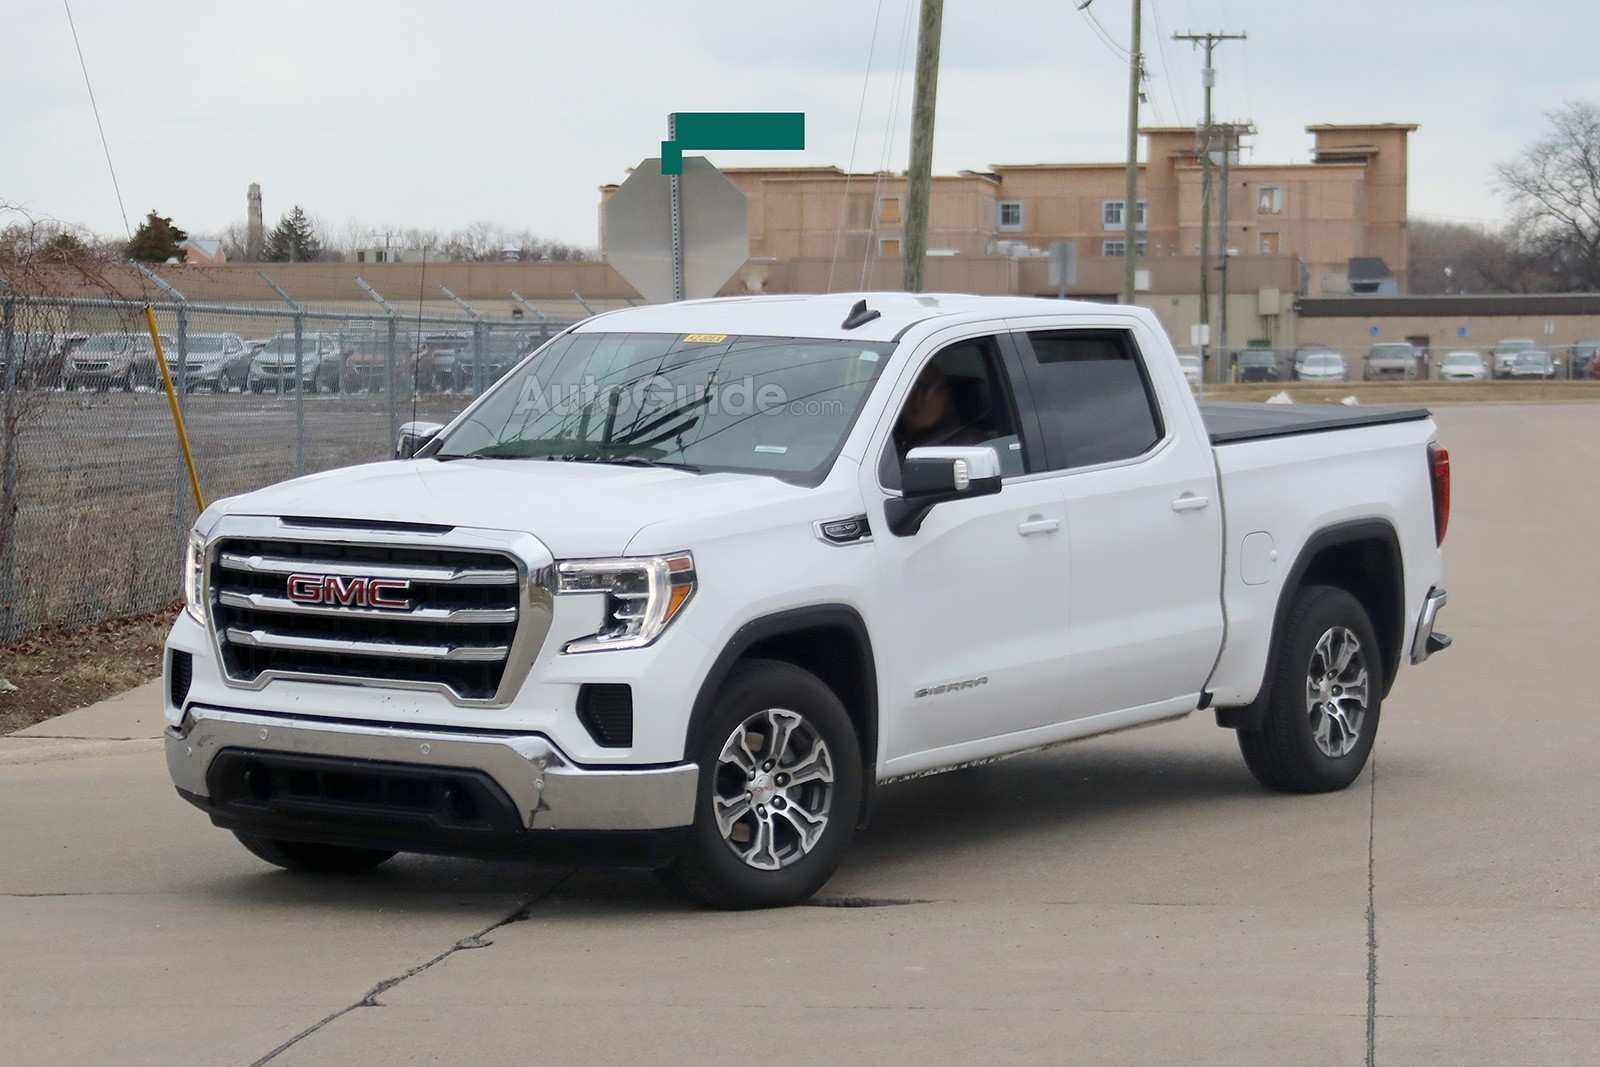 64 Gallery of Best Gmc Denali 2019 Interior Exterior And Review Exterior with Best Gmc Denali 2019 Interior Exterior And Review